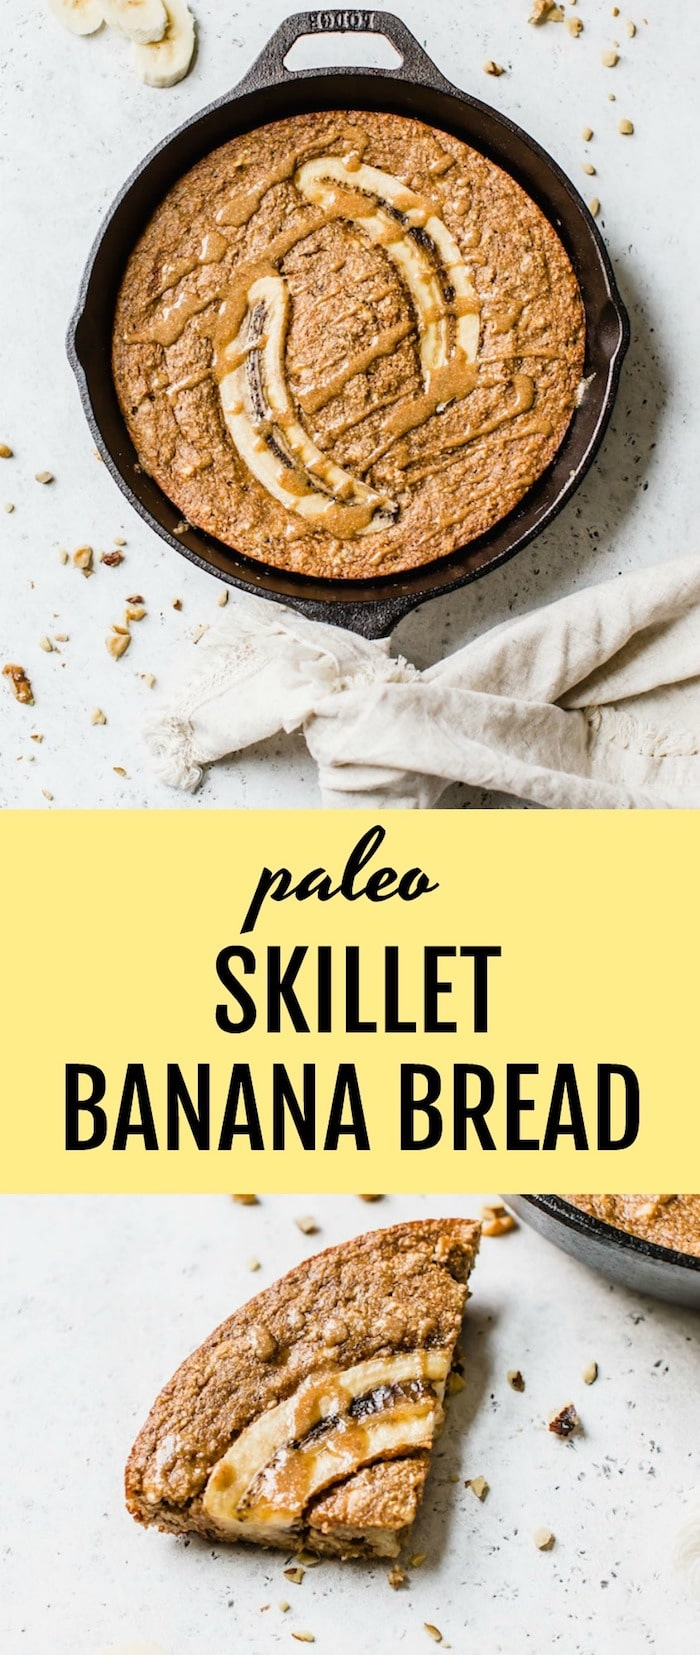 Paleo Skillet Banana Bread- banana bread that's gluten free, refined sugar free and better for you with all the tasty banana flavor you're craving | thealmondeater.com